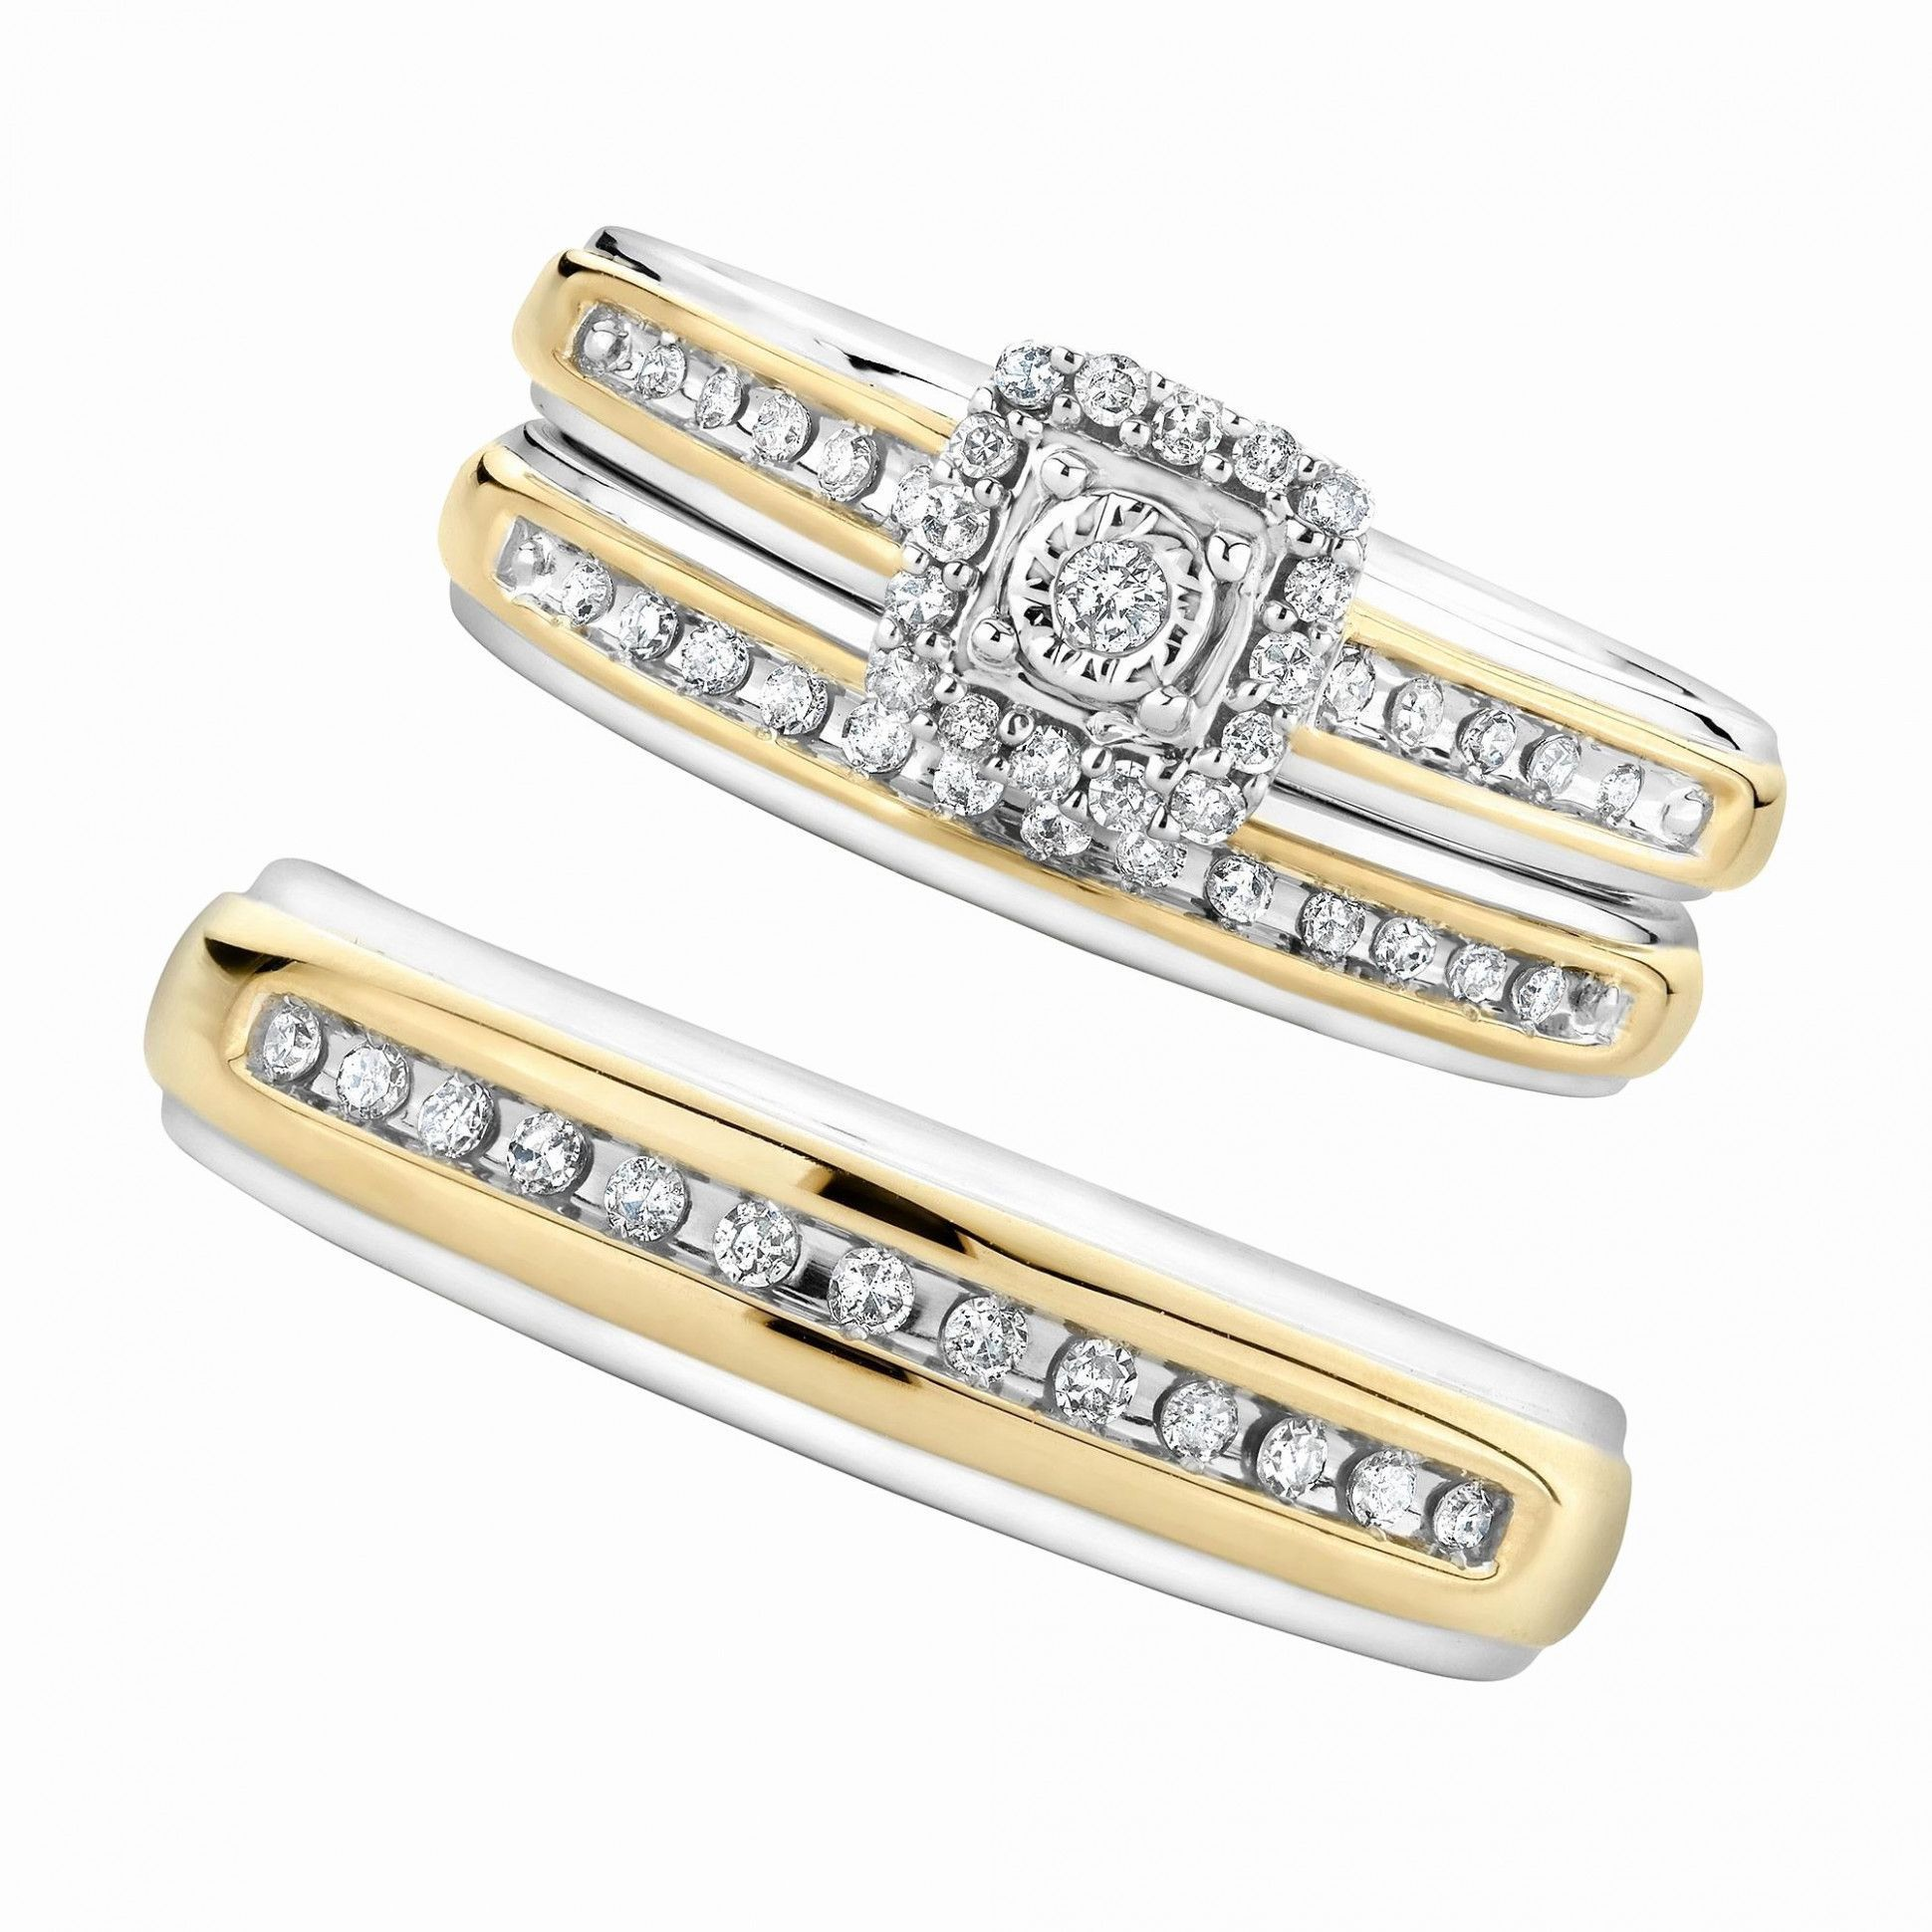 Expensive Wedding Rings Bridal Sets Sears Luxury Unique Pics Scifiminds Uniqueweddingrings: Sears Gold Wedding Bands At Websimilar.org